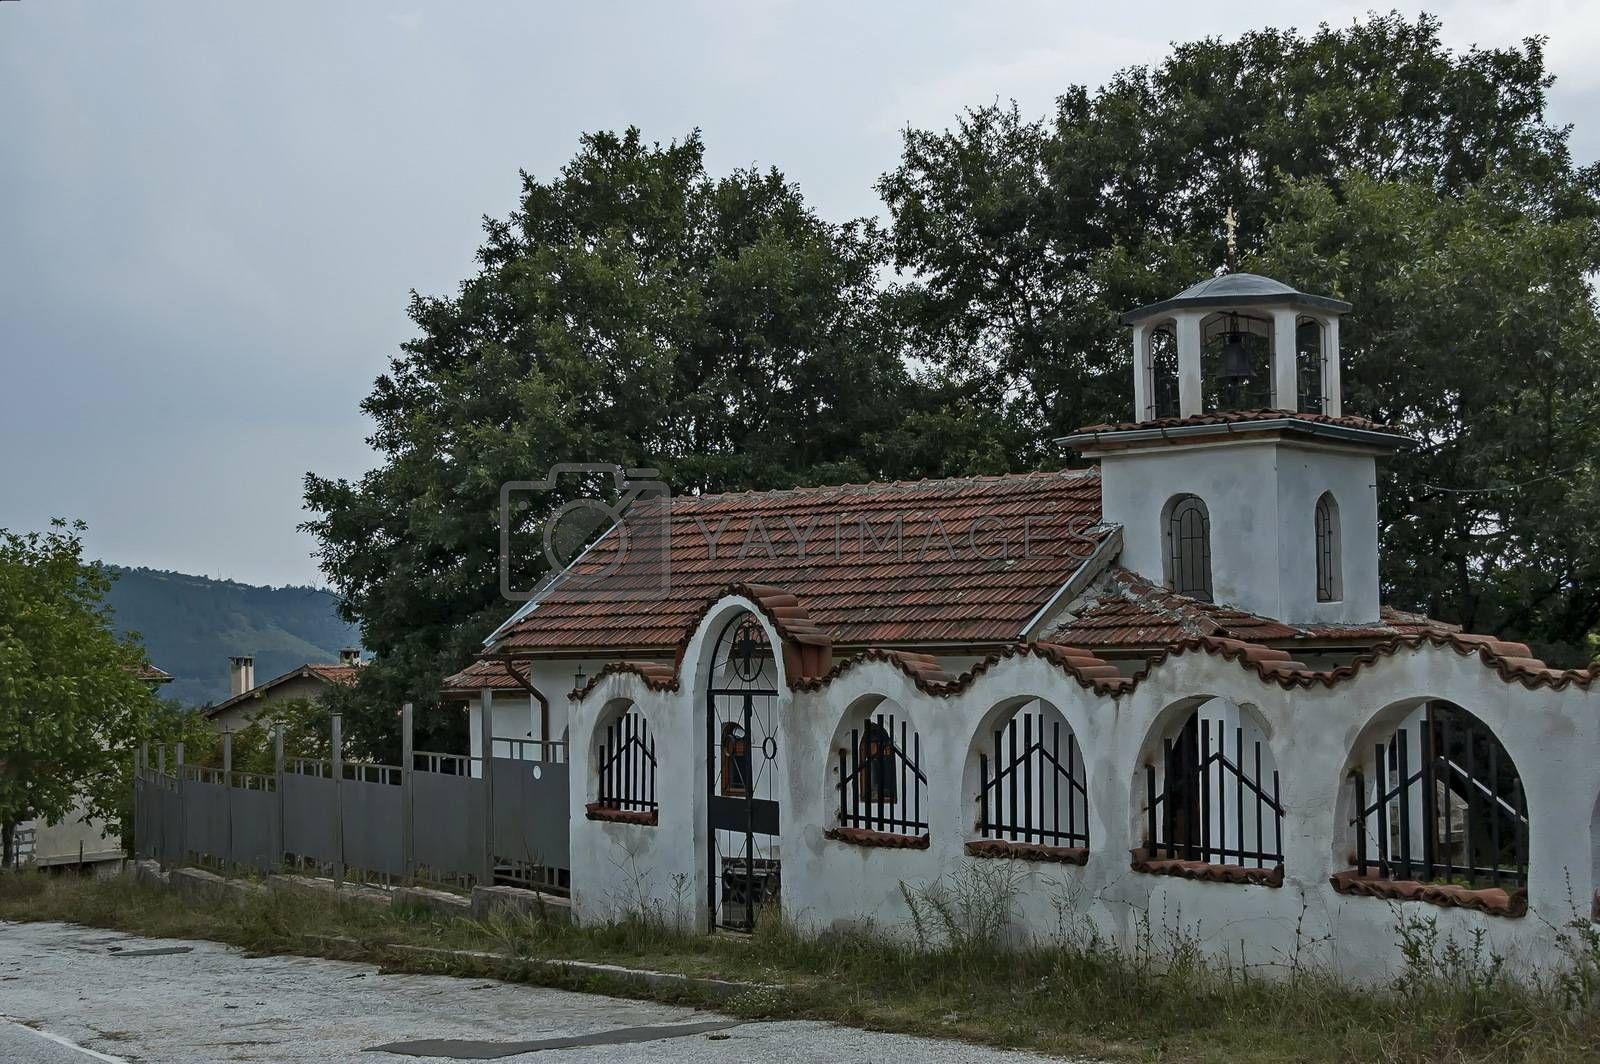 A beautiful landscape with a small old church in the village of Muhovo, Ihtiman region, Bulgaria, Europe